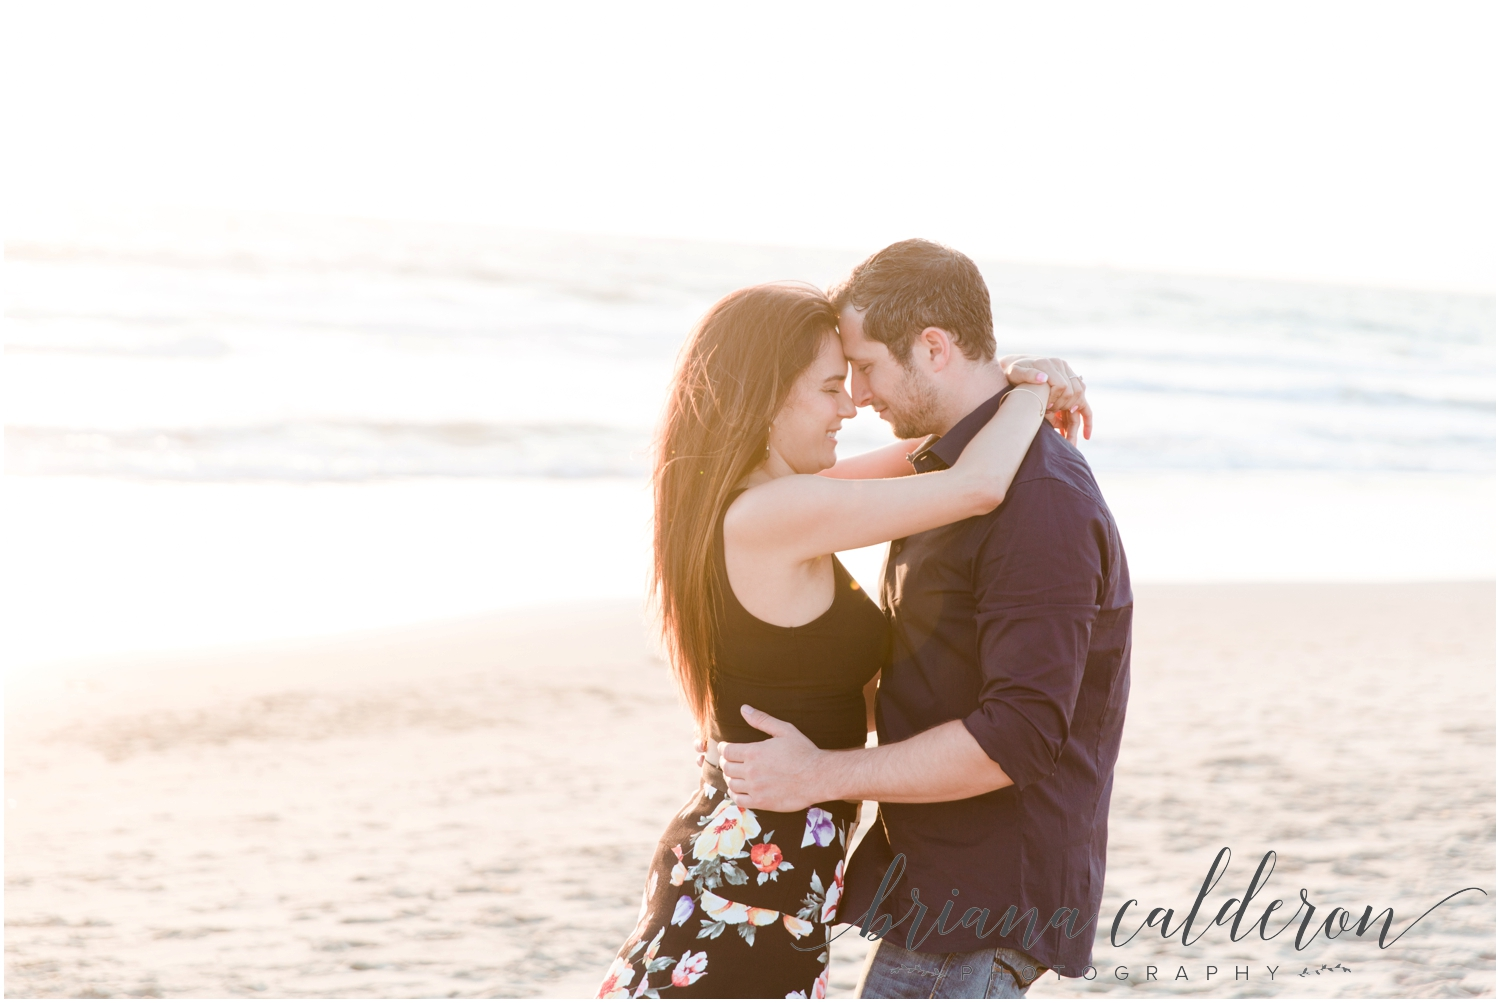 LA Beach Engagement Photos by Briana Calderon Photography_0820.jpg